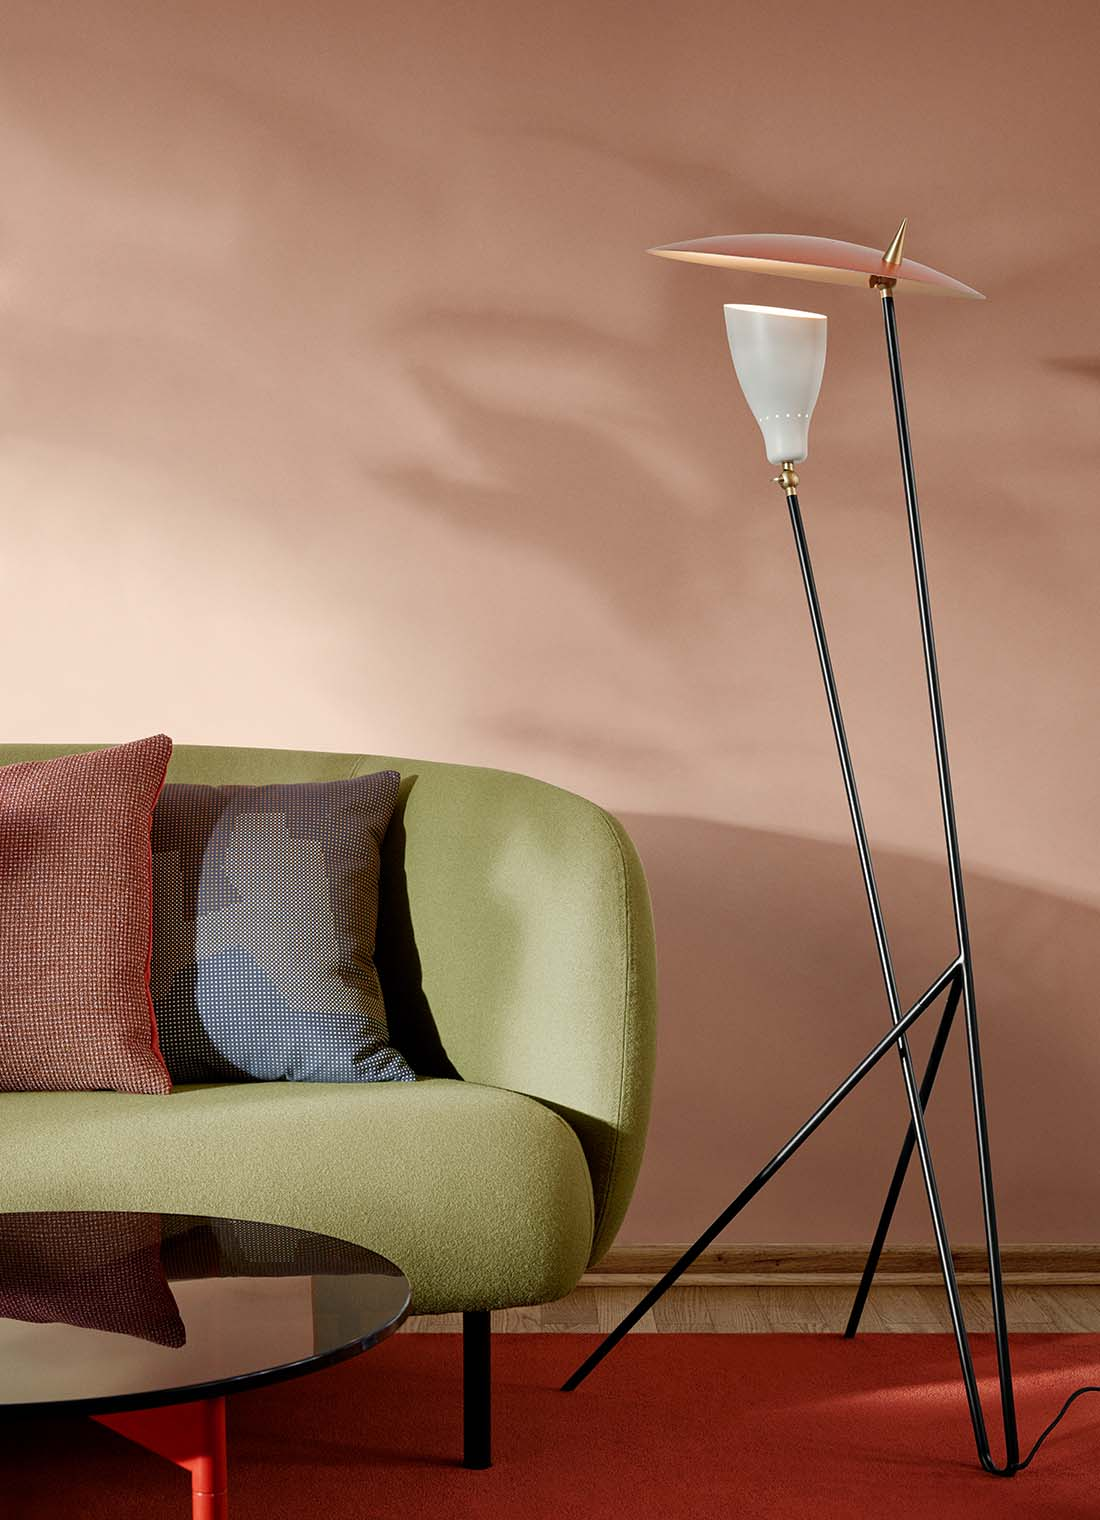 Silhouette floor lamp in living room setting